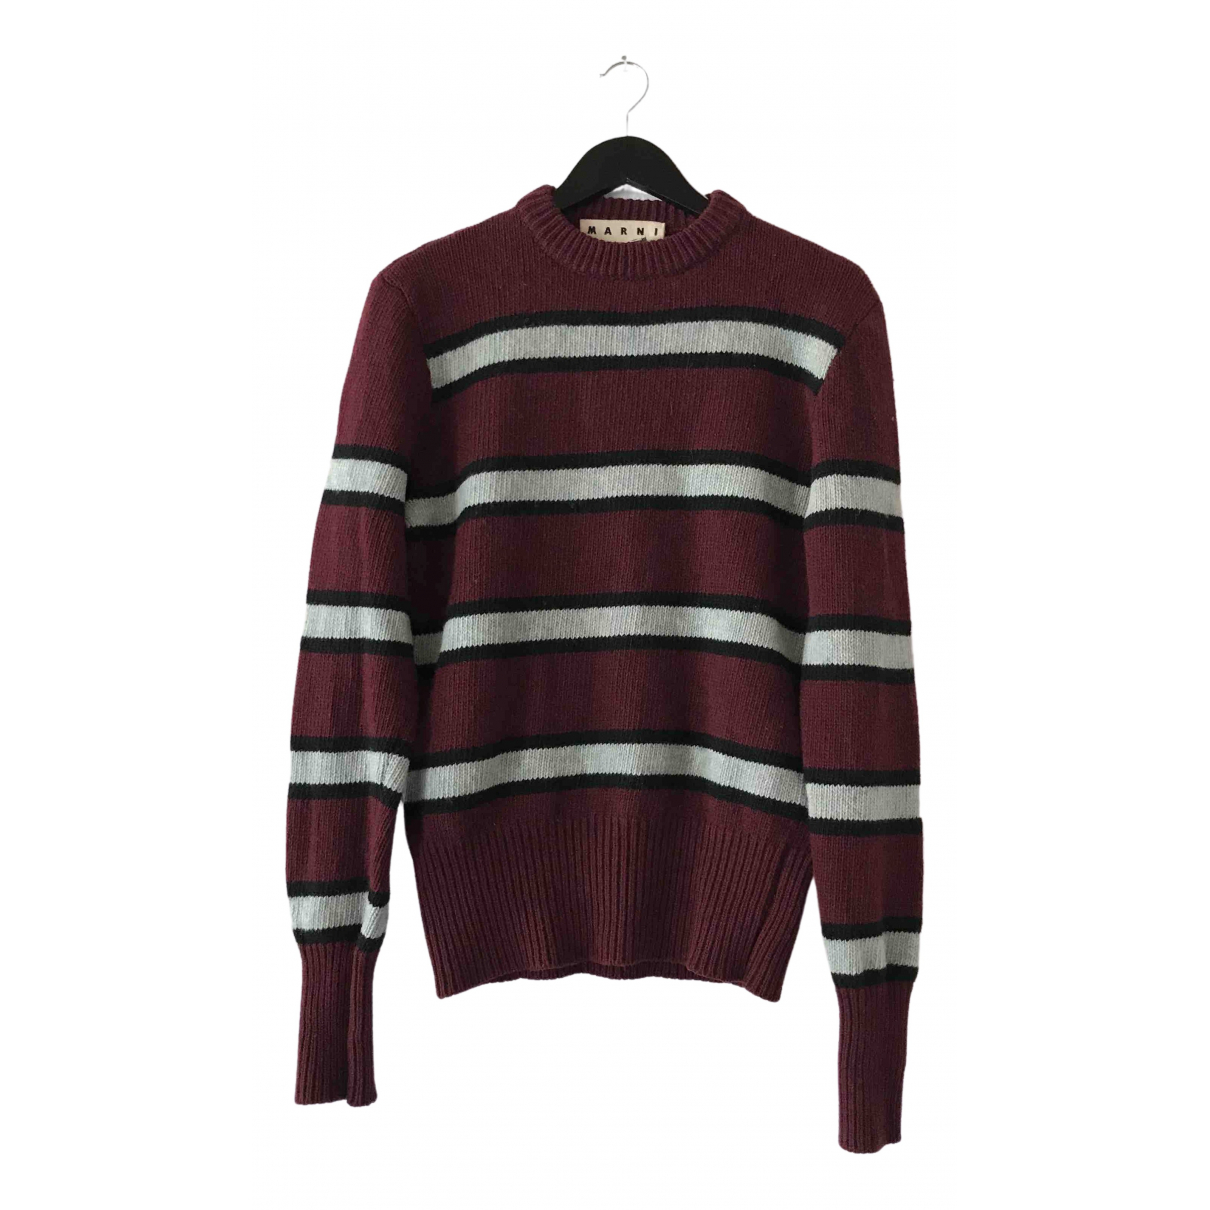 Marni \N Pullover in  Bordeauxrot Wolle